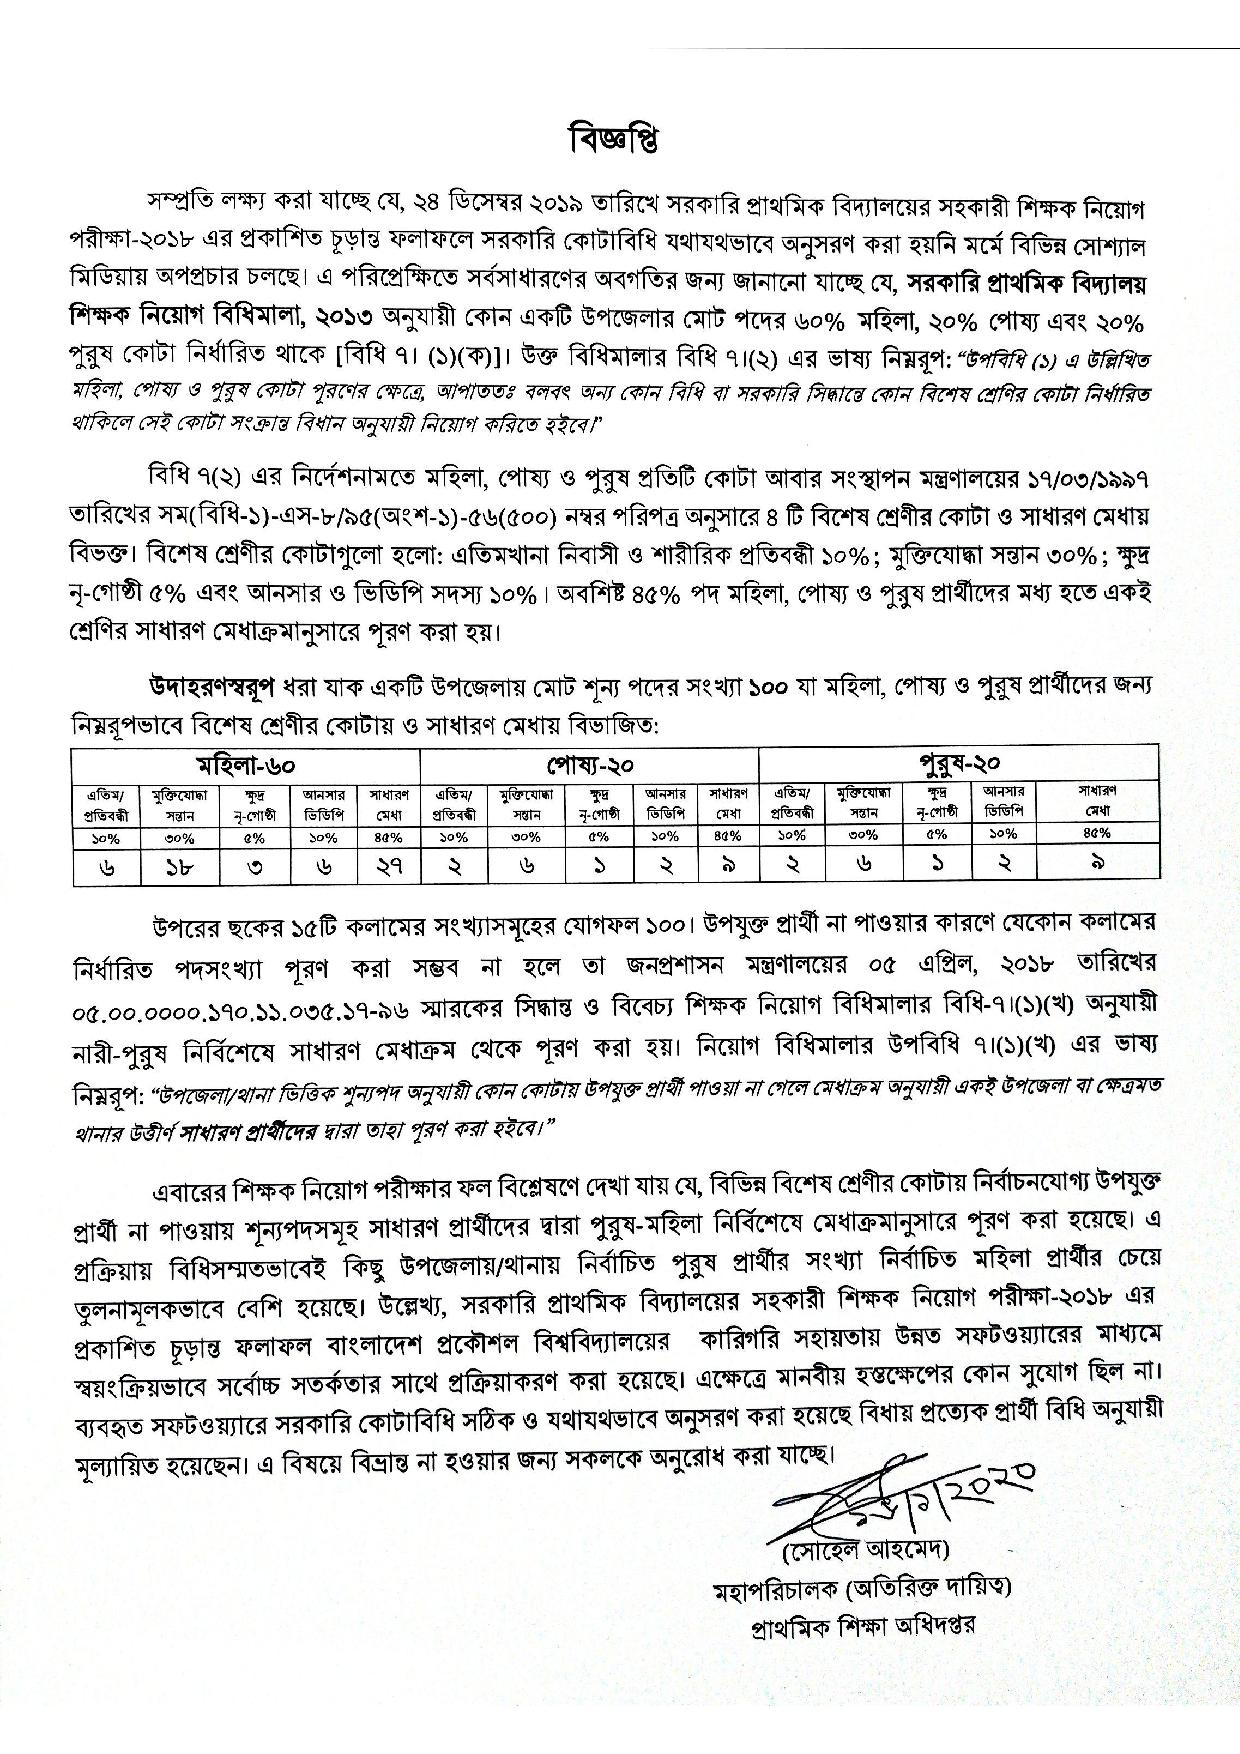 DPE issued a notice for explaining the quota 2020